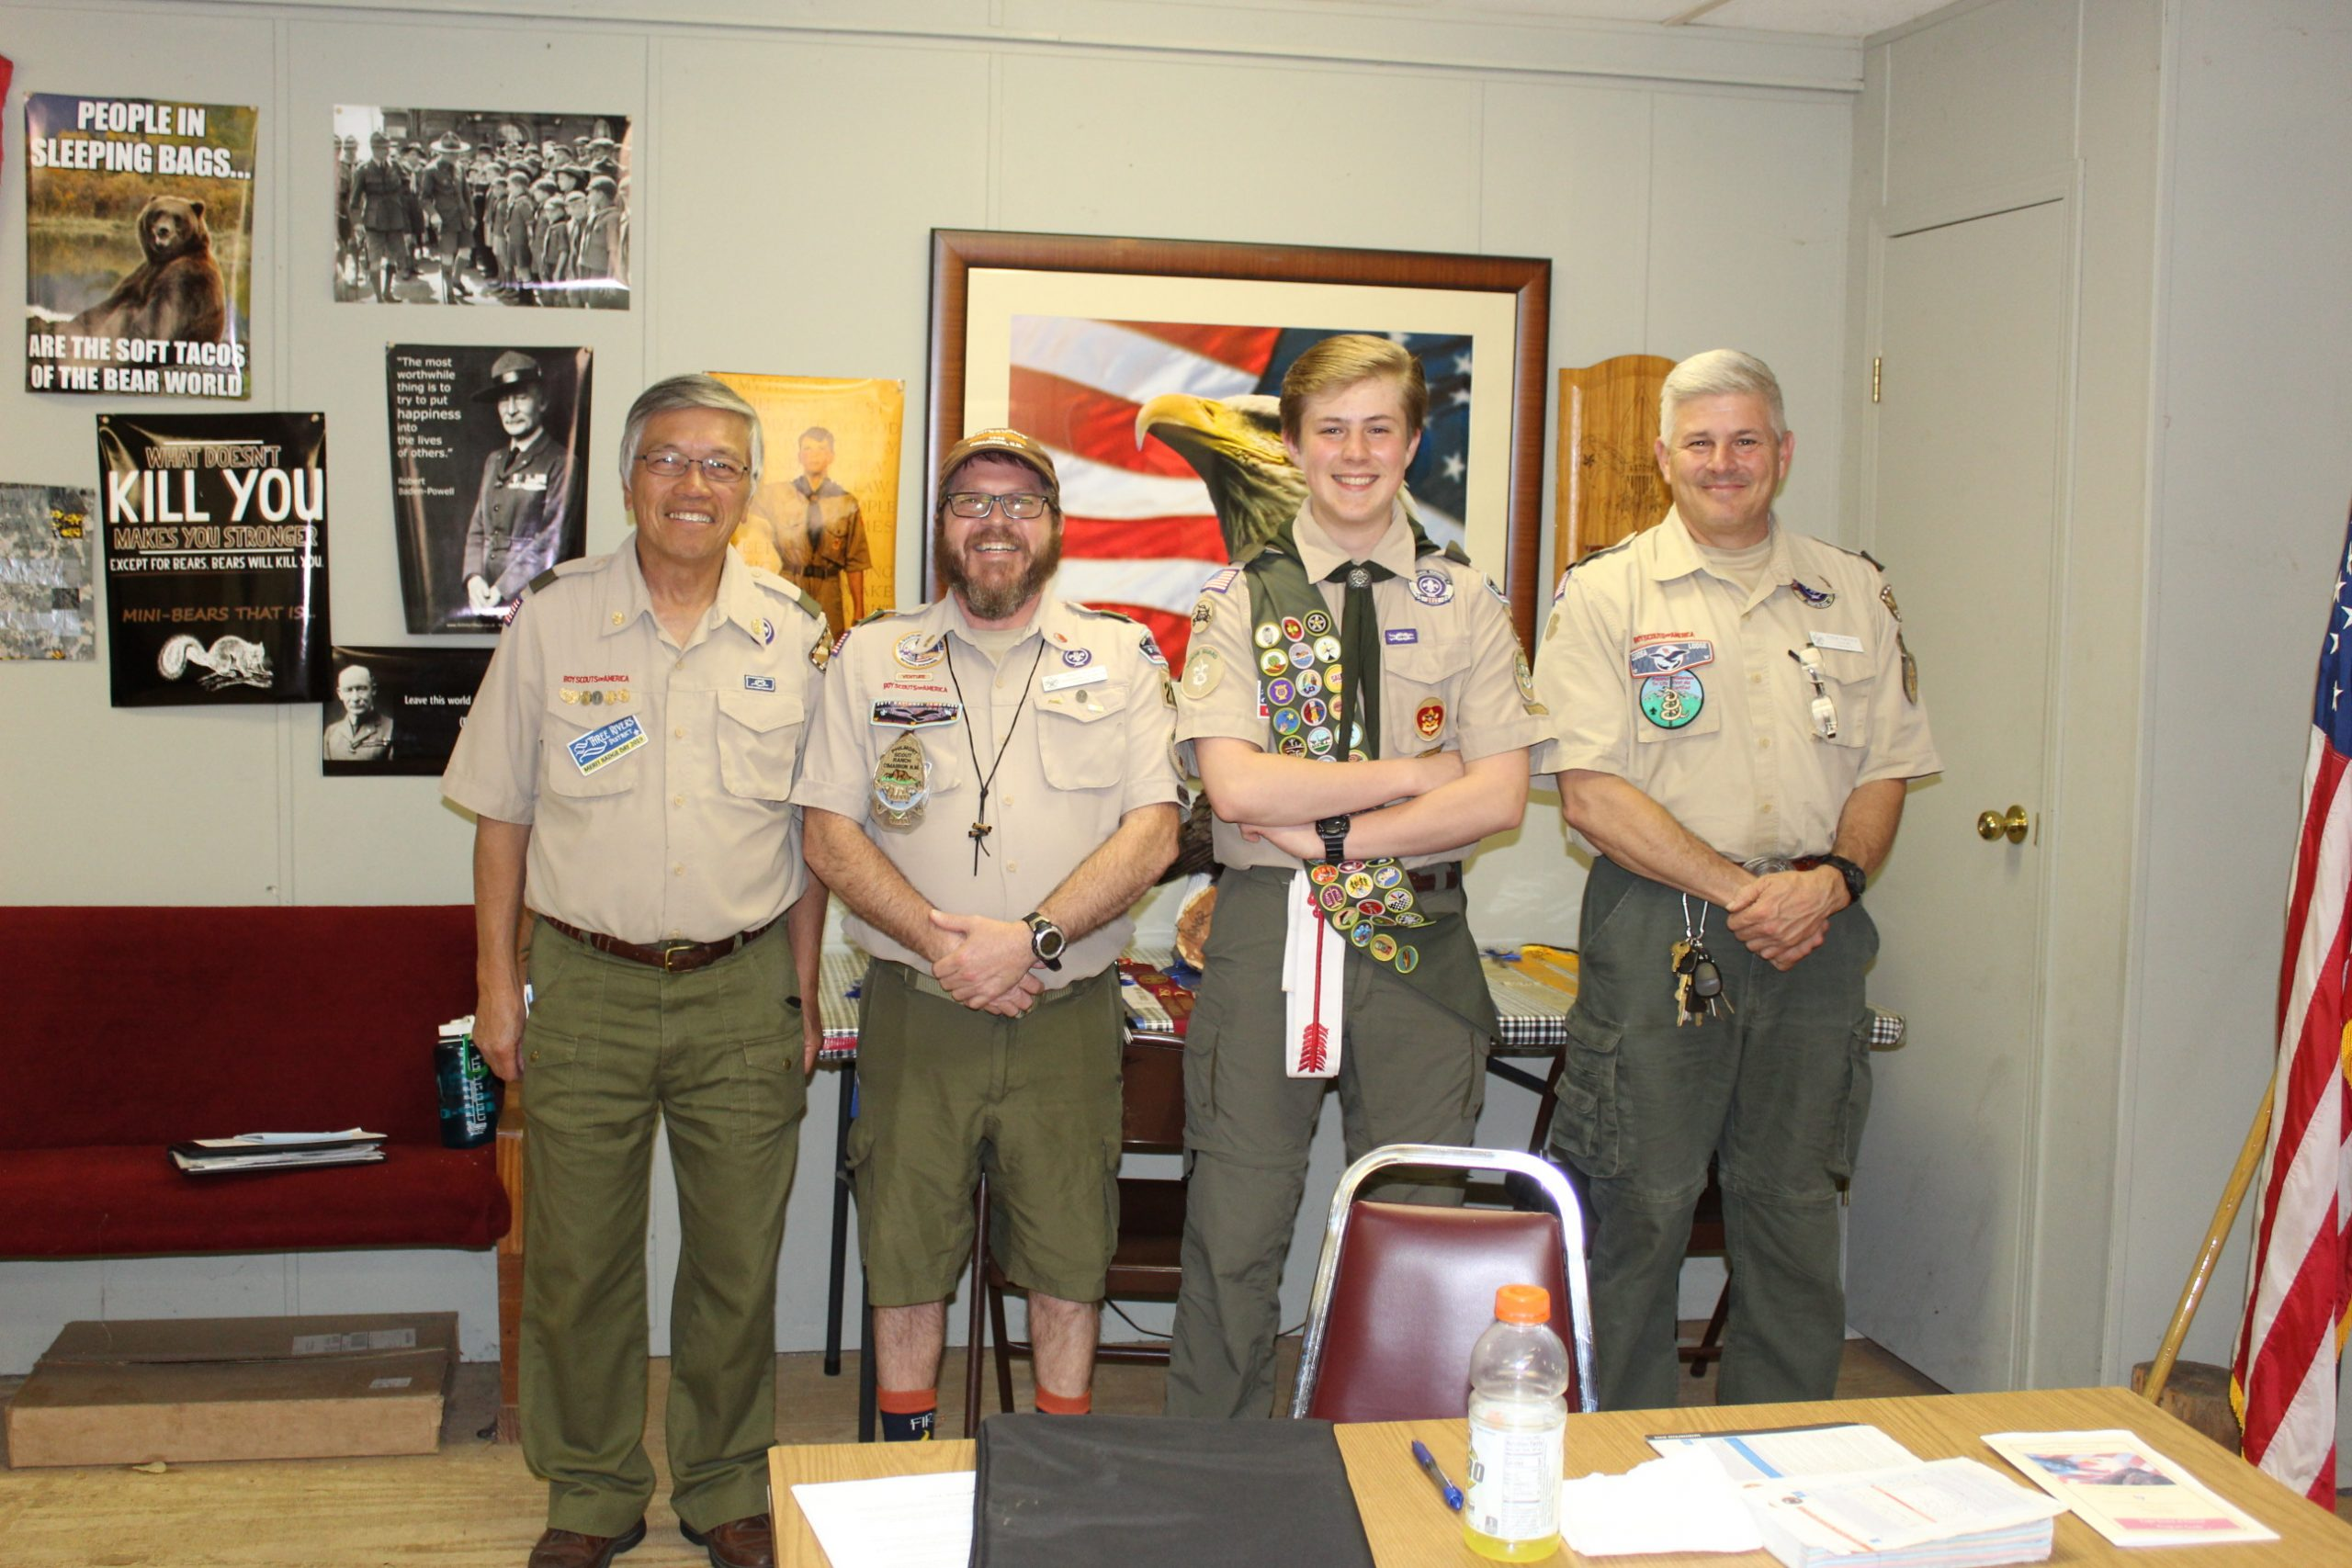 Trussville teen earns Eagle Scout status while maintaining 4.0 GPA